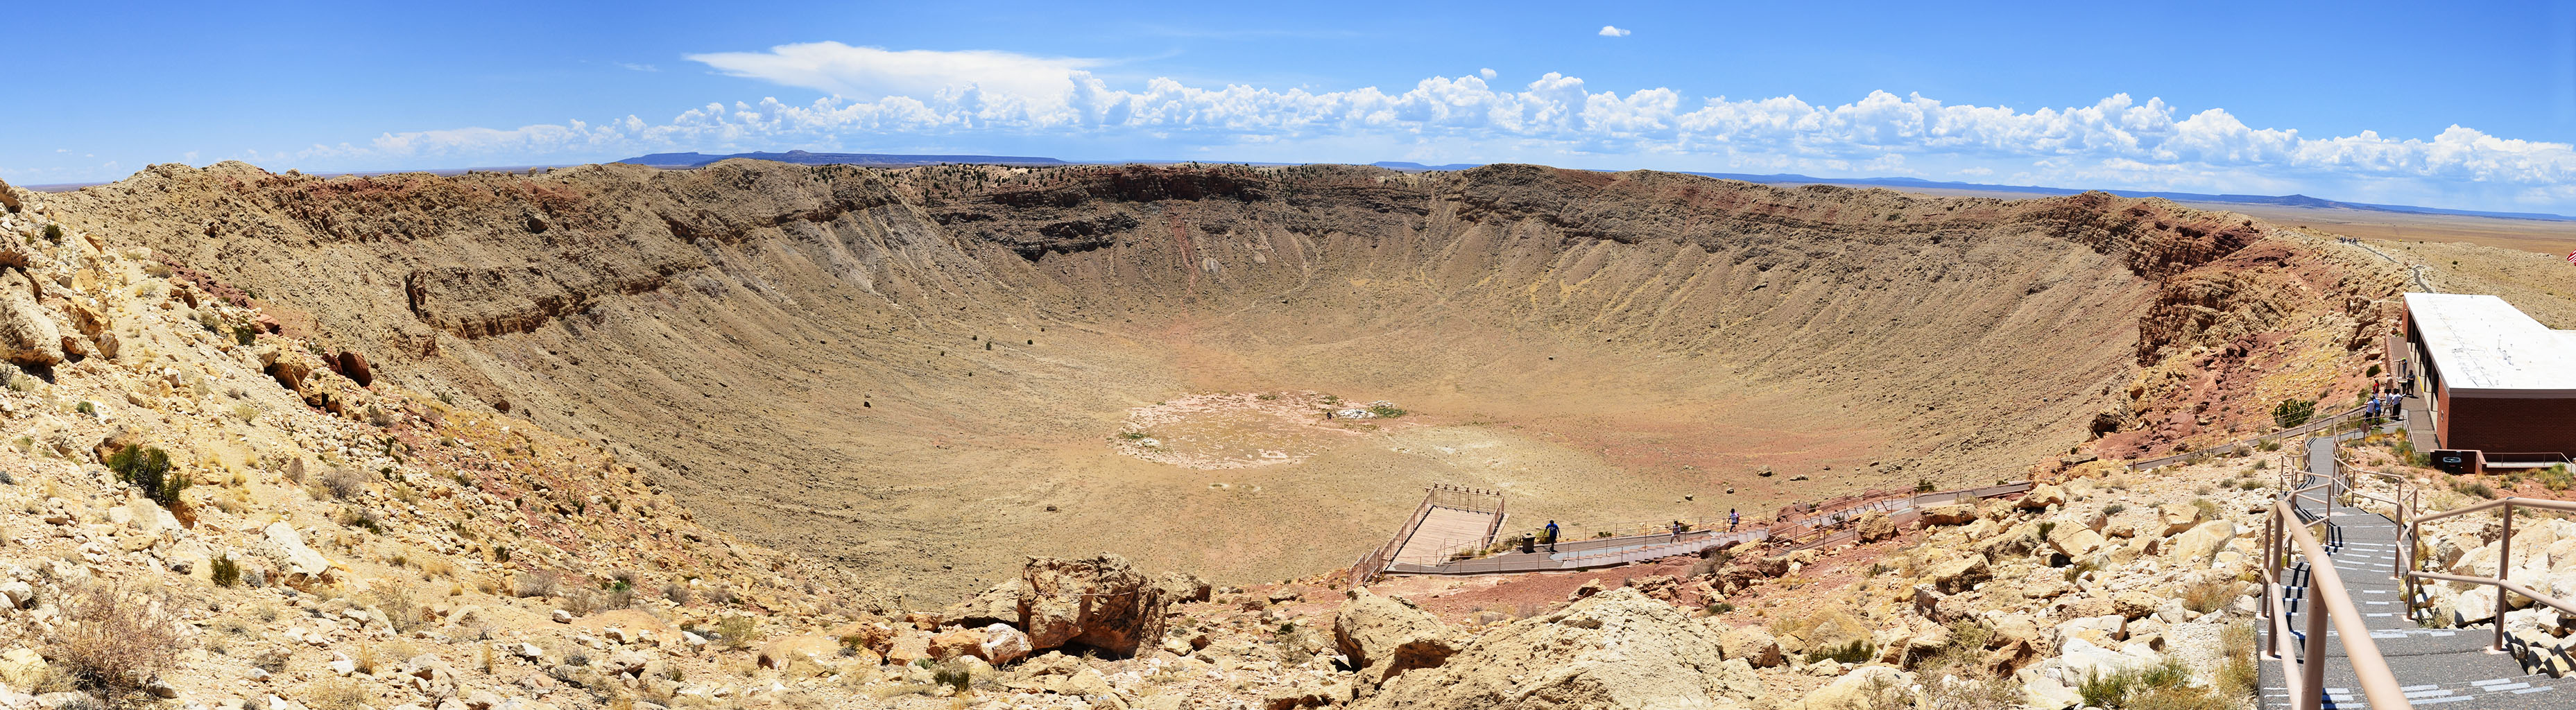 This is a stitched panoramic image of Meteor (or Barringer) Crater located near Winslow, Arizona,... [+] 2012 07 11. Image credit: wikimedia user Tsaiproject, CC BY-SA 3.0